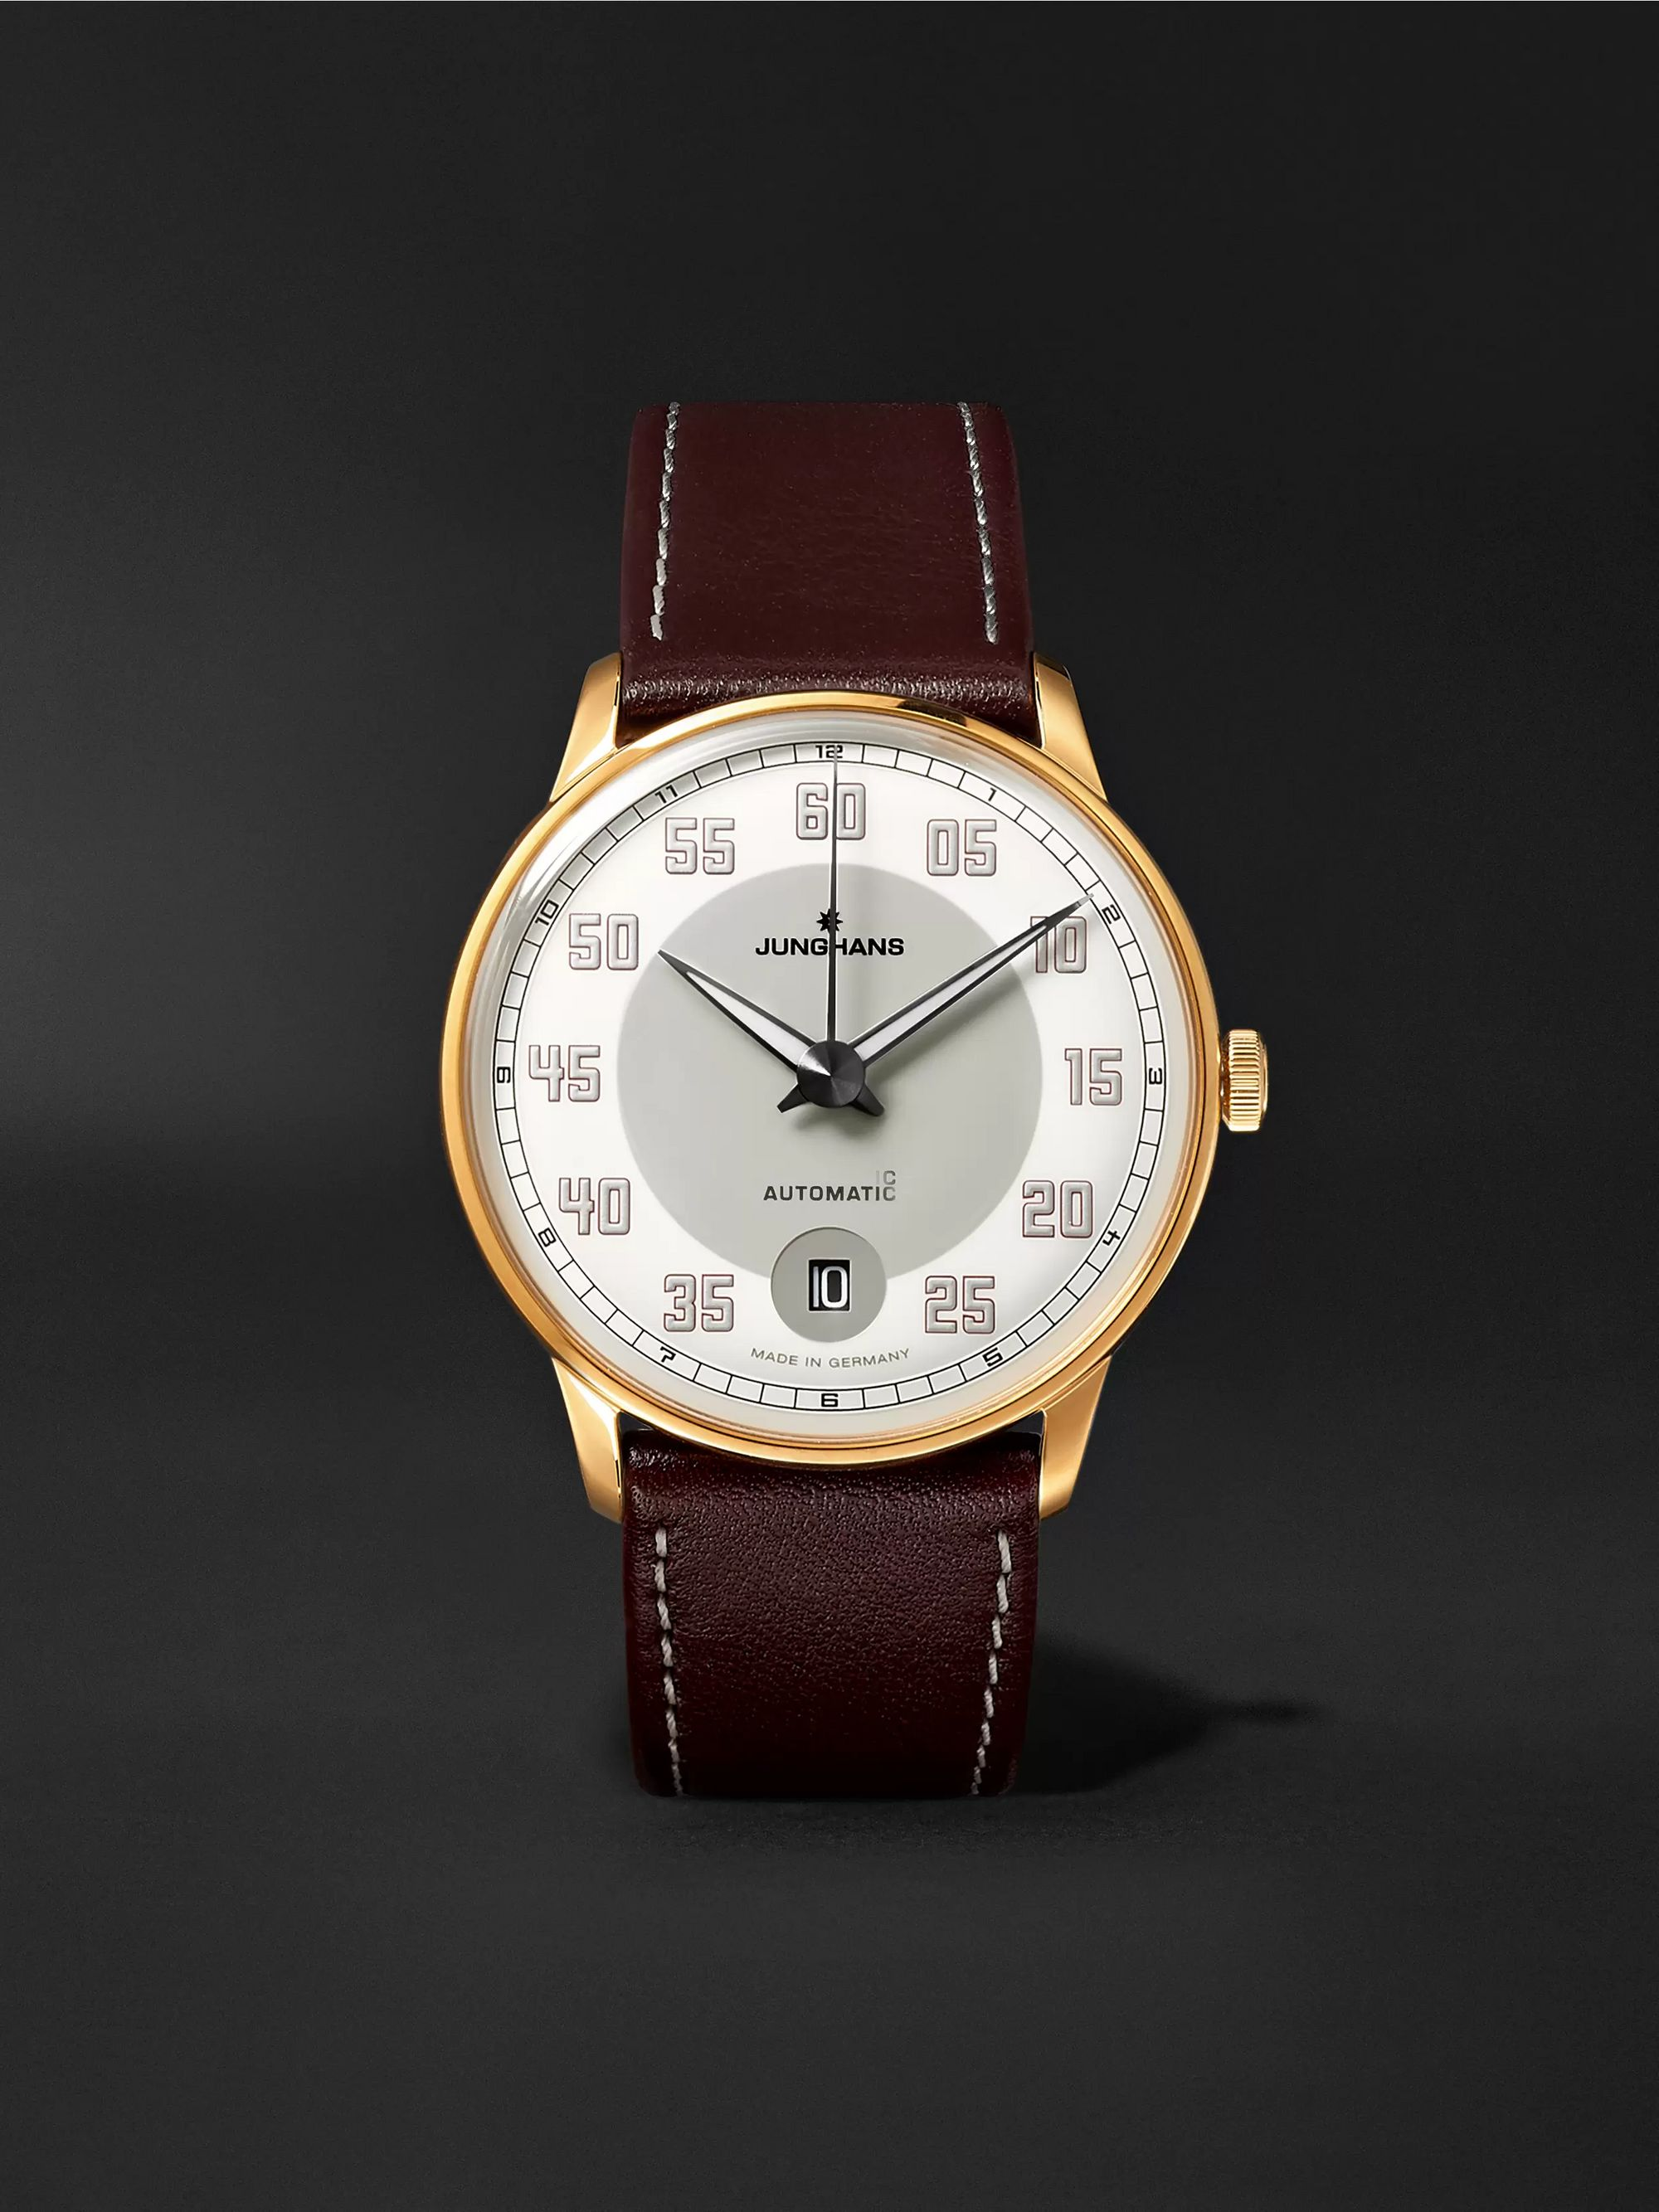 Junghans Meister Driver Automatic 38mm Gold-Tone Stainless Steel and Leather Watch, Ref. No. 027/7710.00